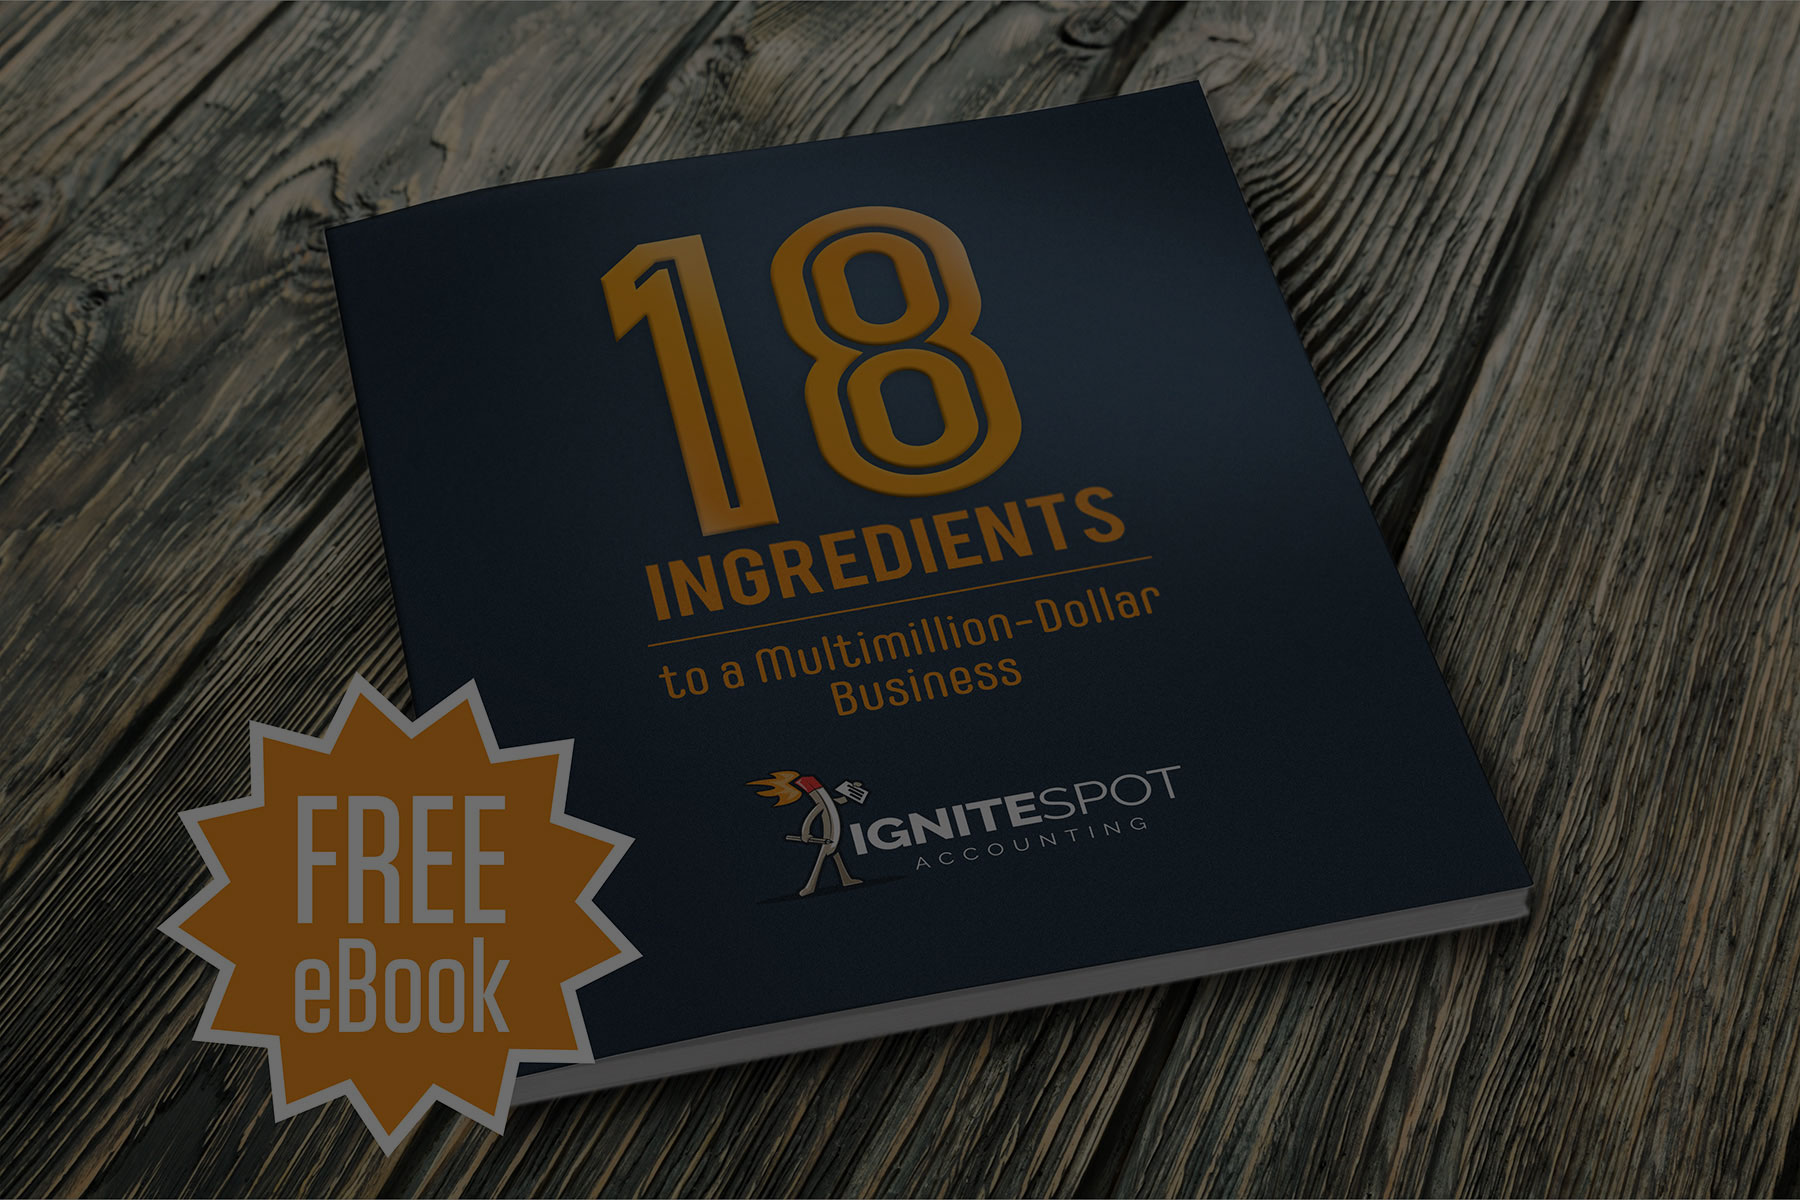 18-Ingredients-to-a-Multi-Million-Dollar-Business-gradient